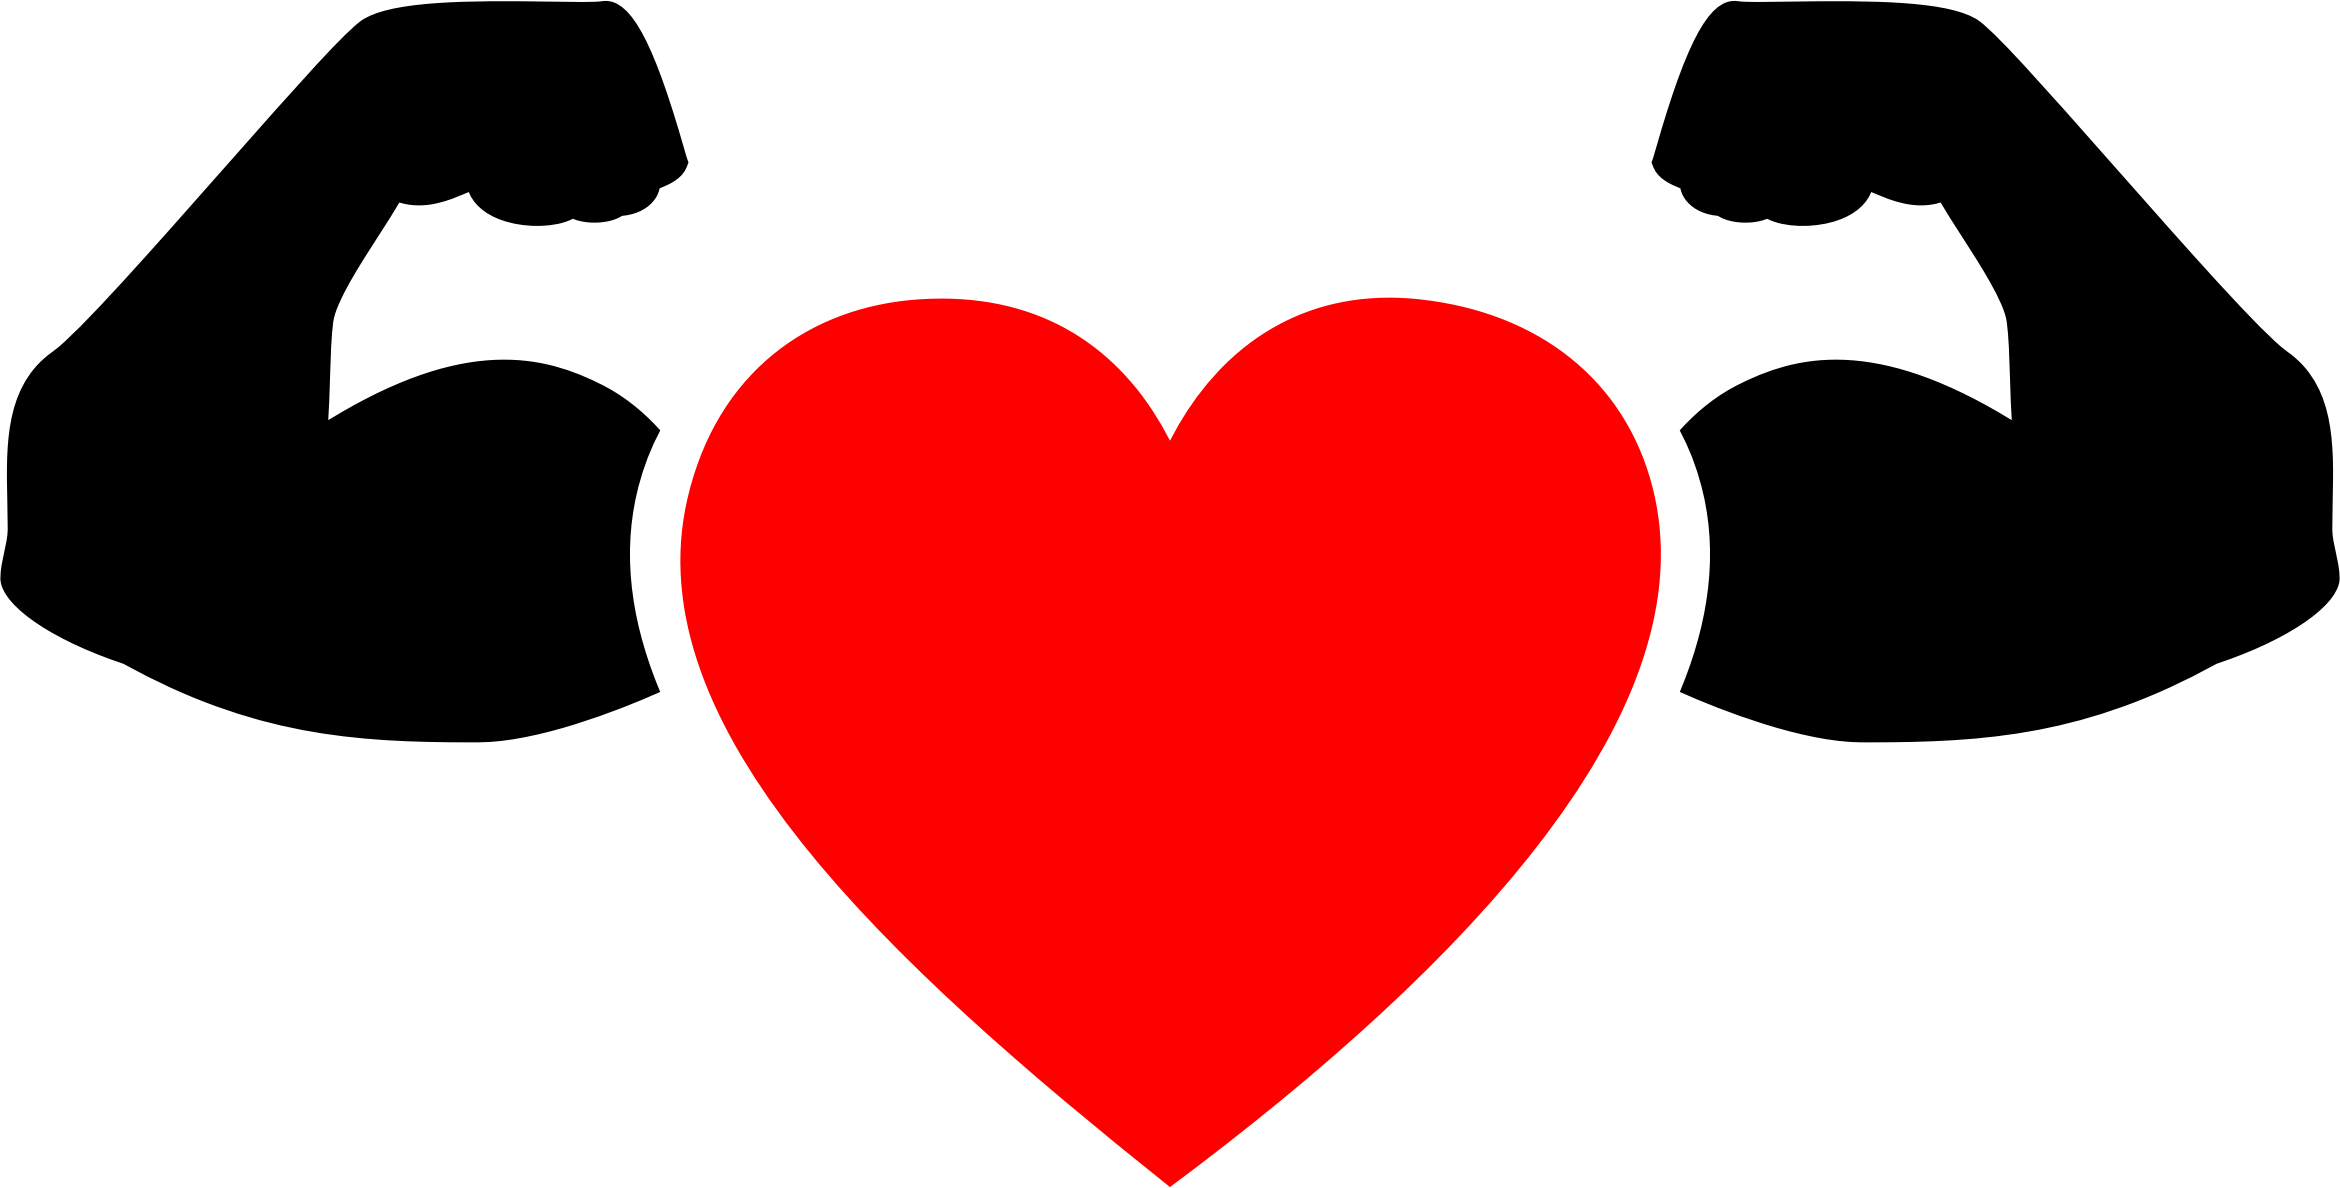 Strong heart png. Clipart muscular icon big